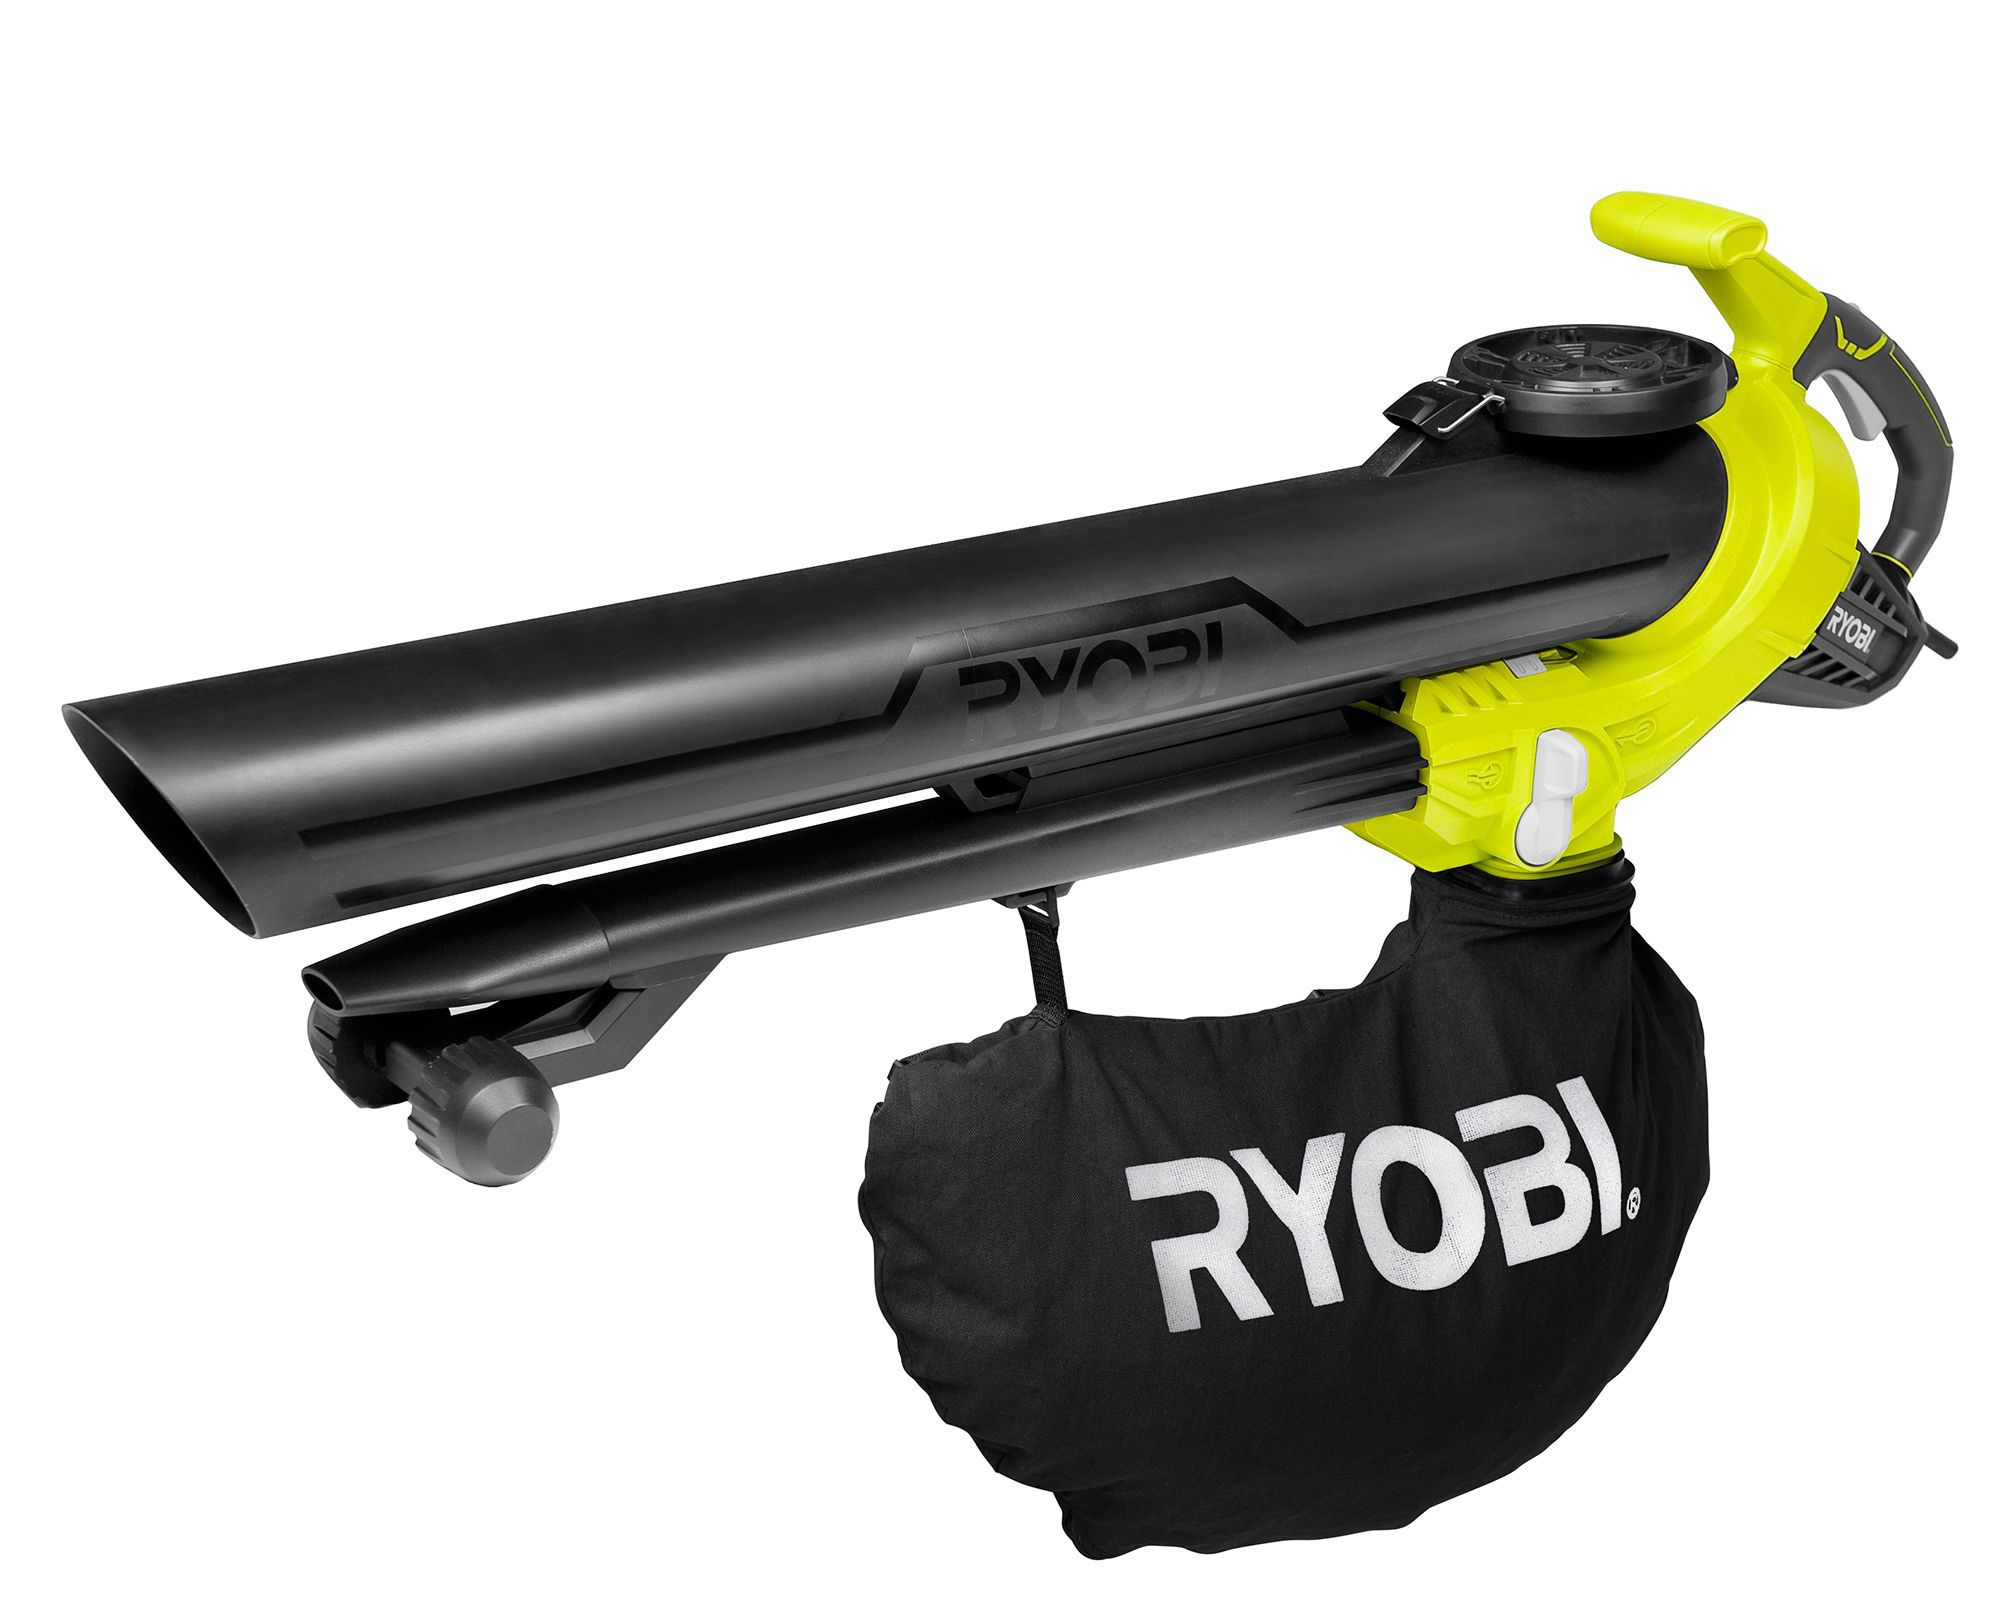 Mesmerizing Ryobi Corded Garden Blow Vac  Departments  Diy At Bq With Outstanding Garden Centre Melton Mowbray Besides Cheap Garden Shears Furthermore Hummingbird Garden Plants With Archaic How To Get Hedgehogs In Your Garden Also Garden Shed Lock In Addition Kensington Gardens Square And Garden Innovations As Well As Garden Of Eden Bible Story Additionally Bellagio Gardens From Diycom With   Outstanding Ryobi Corded Garden Blow Vac  Departments  Diy At Bq With Archaic Garden Centre Melton Mowbray Besides Cheap Garden Shears Furthermore Hummingbird Garden Plants And Mesmerizing How To Get Hedgehogs In Your Garden Also Garden Shed Lock In Addition Kensington Gardens Square From Diycom